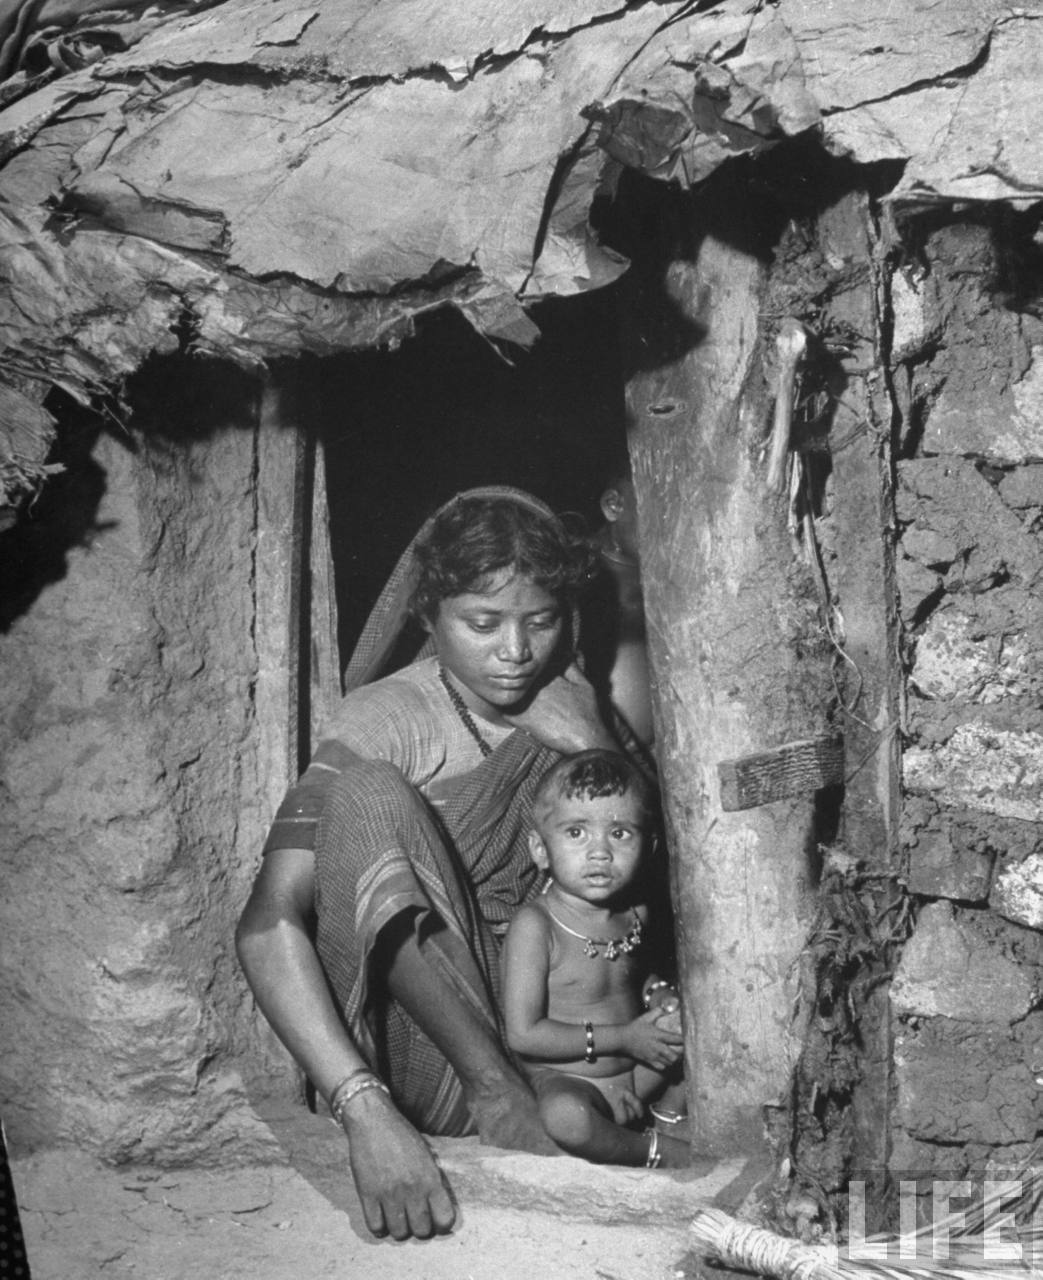 Young Indian Woman with her Child in Doorway of Shack in the Chawls (quarters for the Untouchables) in the Poor Section of the City - Bombay (Mumbai) 1946